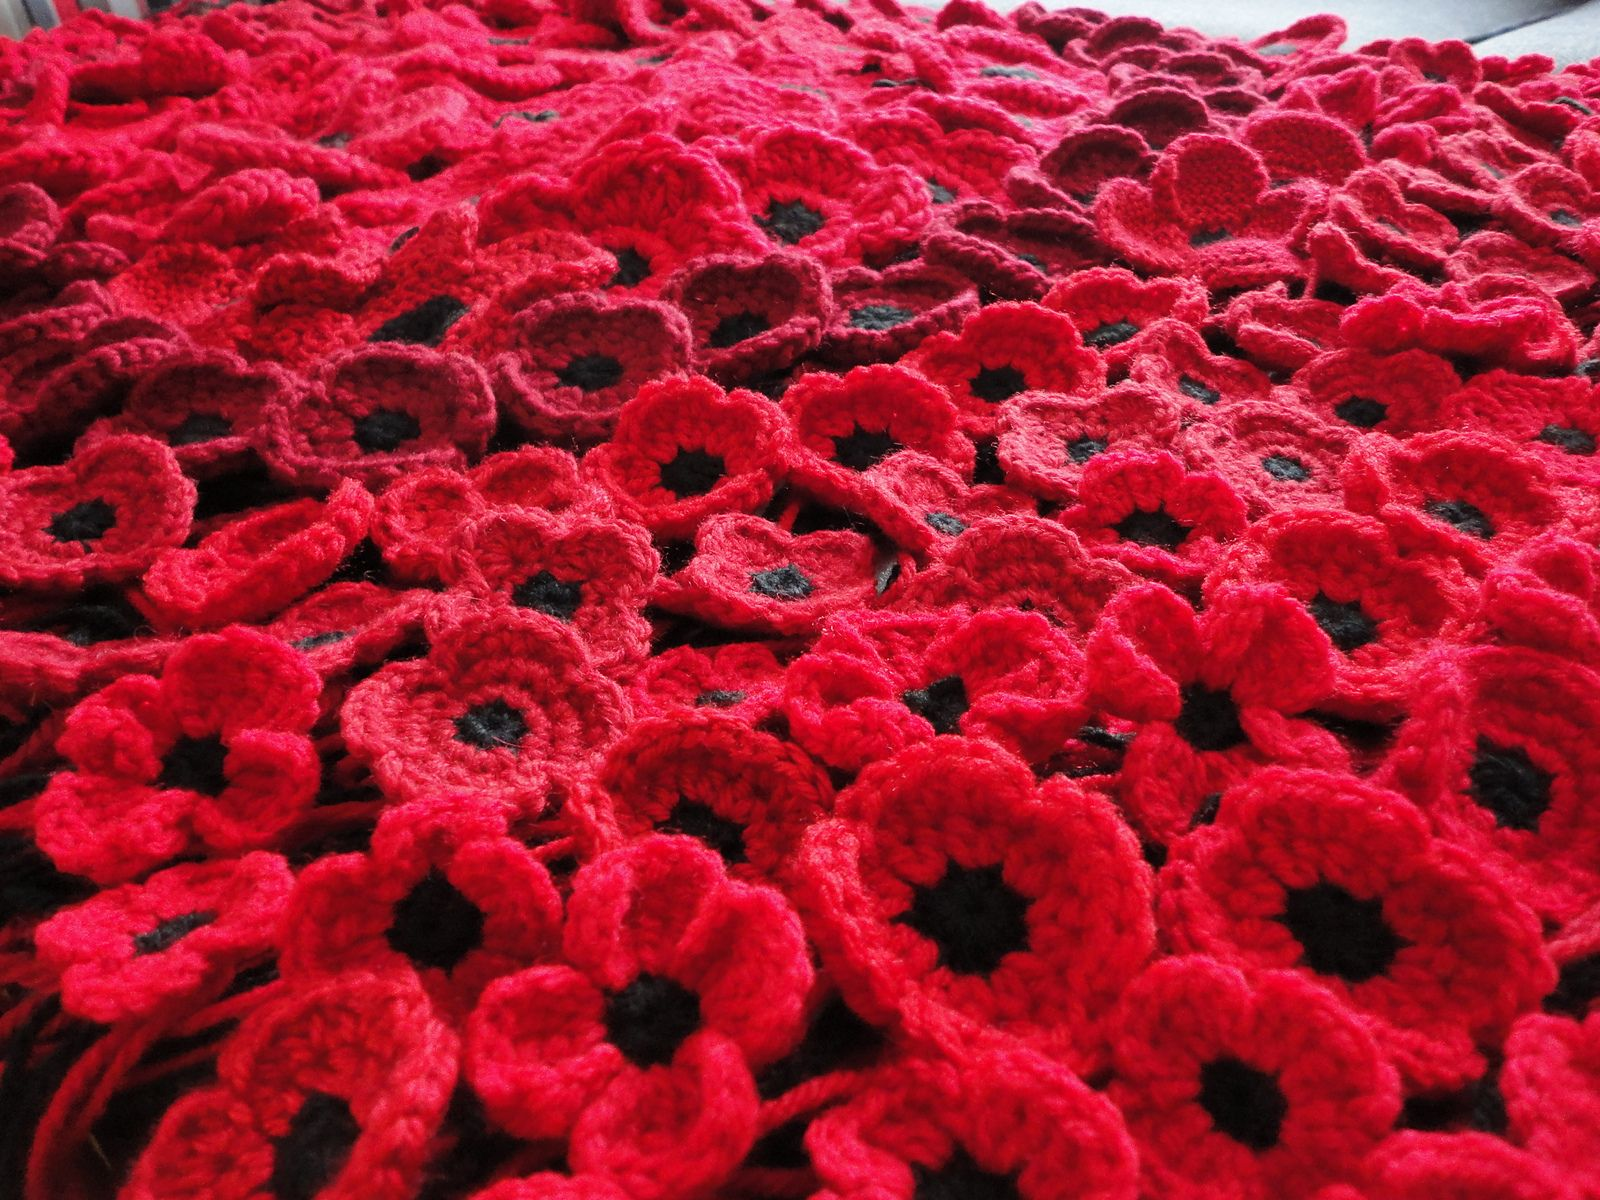 Ravelry crocheted poppies 5 versions by suzanne resaul poppy ravelry crocheted poppies 5 versions pattern by suzanne resaul flowers bankloansurffo Image collections